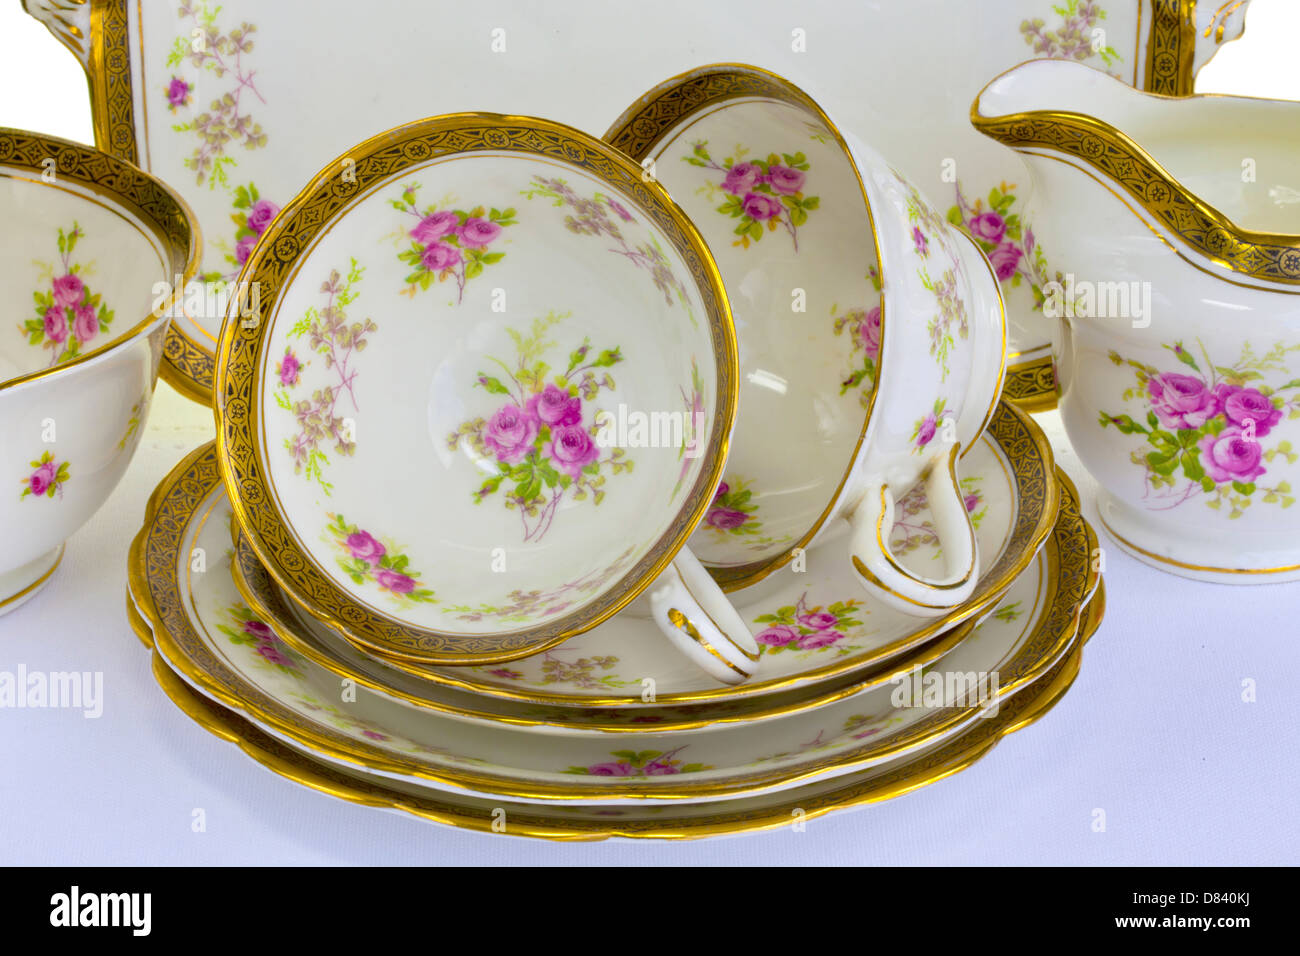 Close-up of dainty antique china tea cups saucers and small plates. & Close-up of dainty antique china tea cups saucers and small plates ...